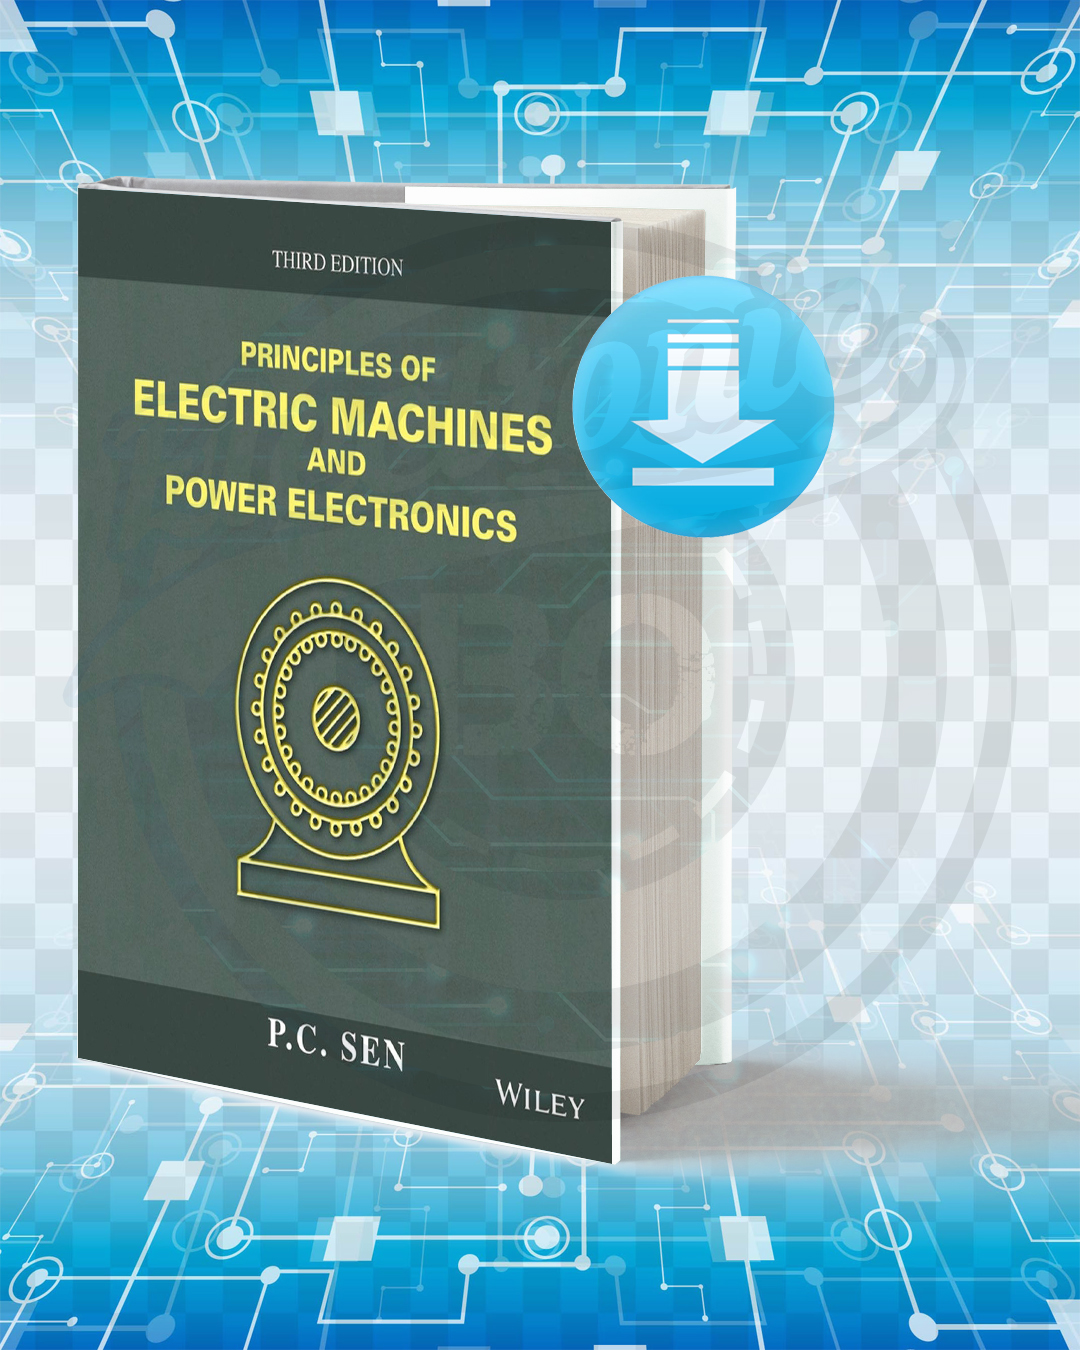 Free Book Principles of Electric Machines and Power Electronics pdf.